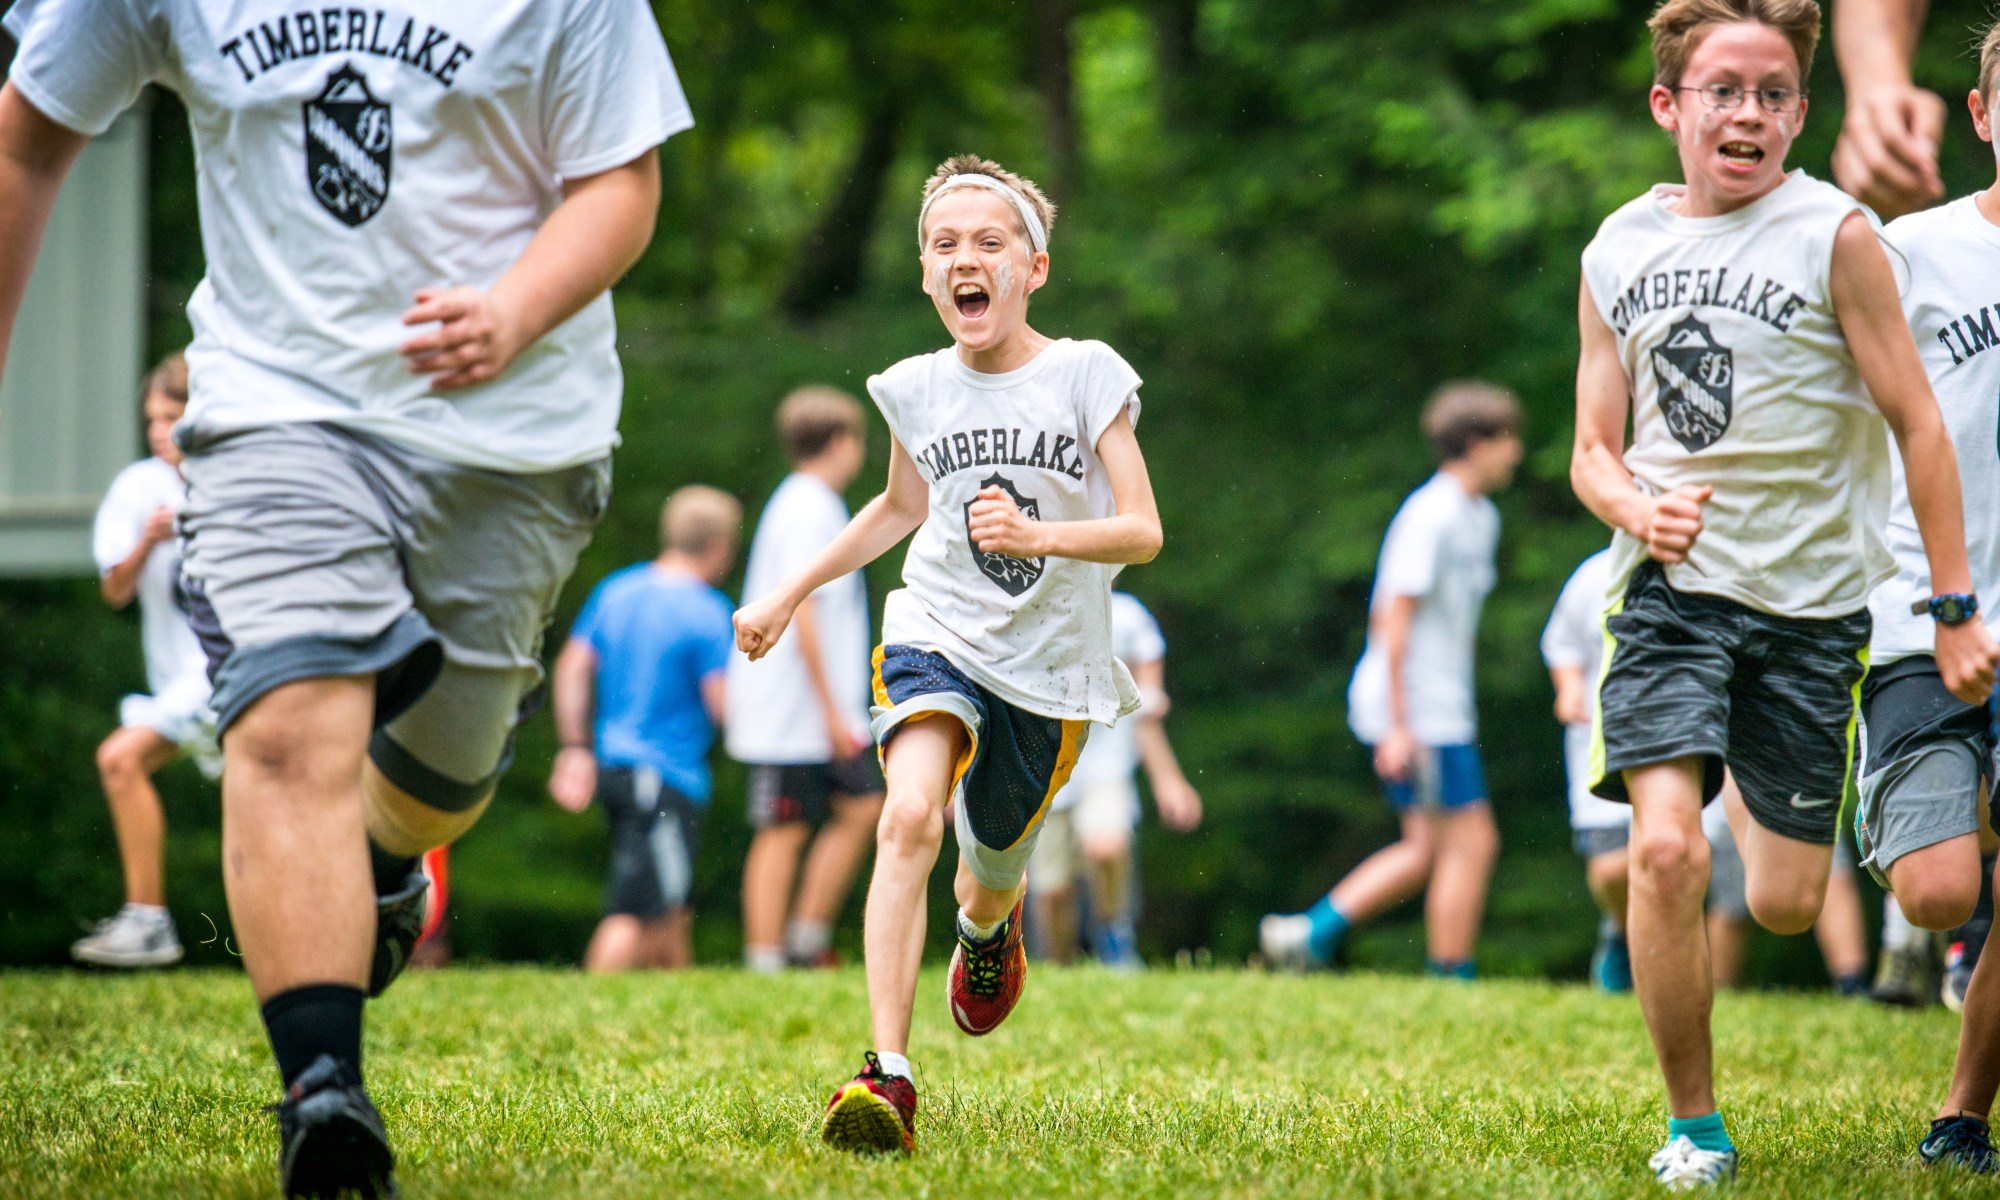 boys running at camp timberlake image